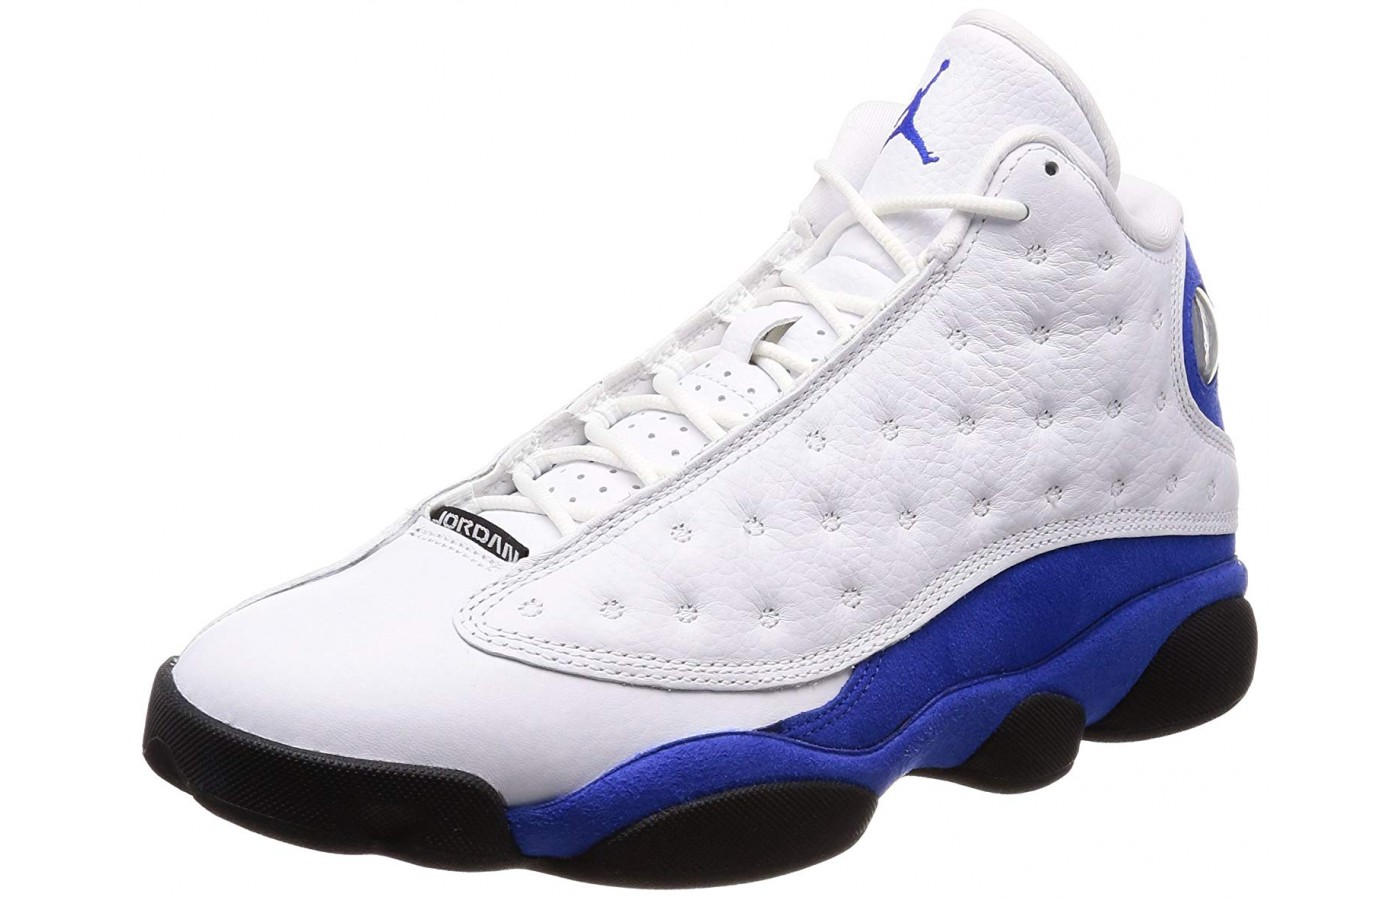 A quilted upper wraps around this Air Jordan Retro 13.